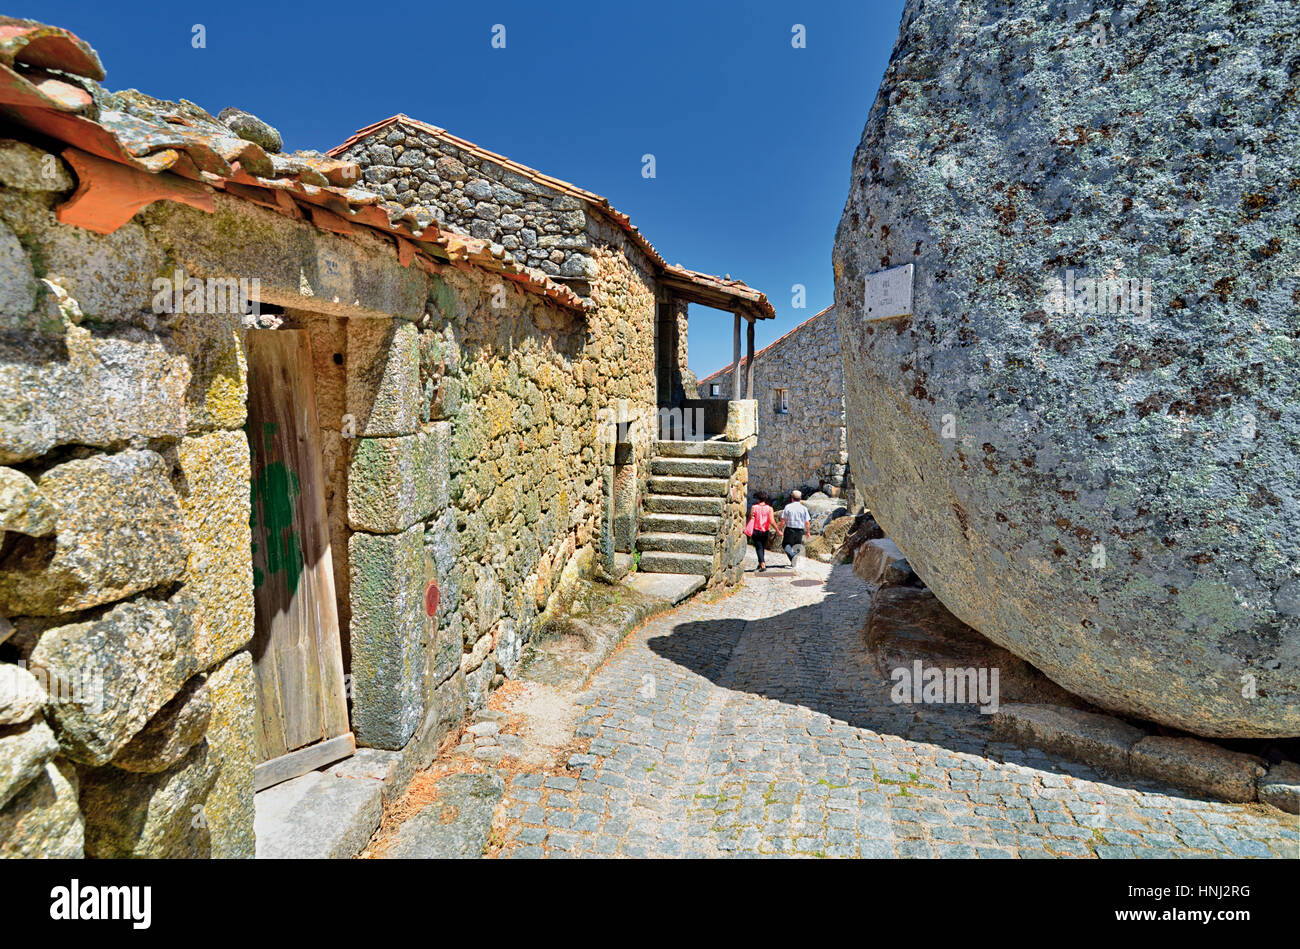 Portugal: Small alley passing granite stone houses and huge rocks in Monsanto - Stock Image